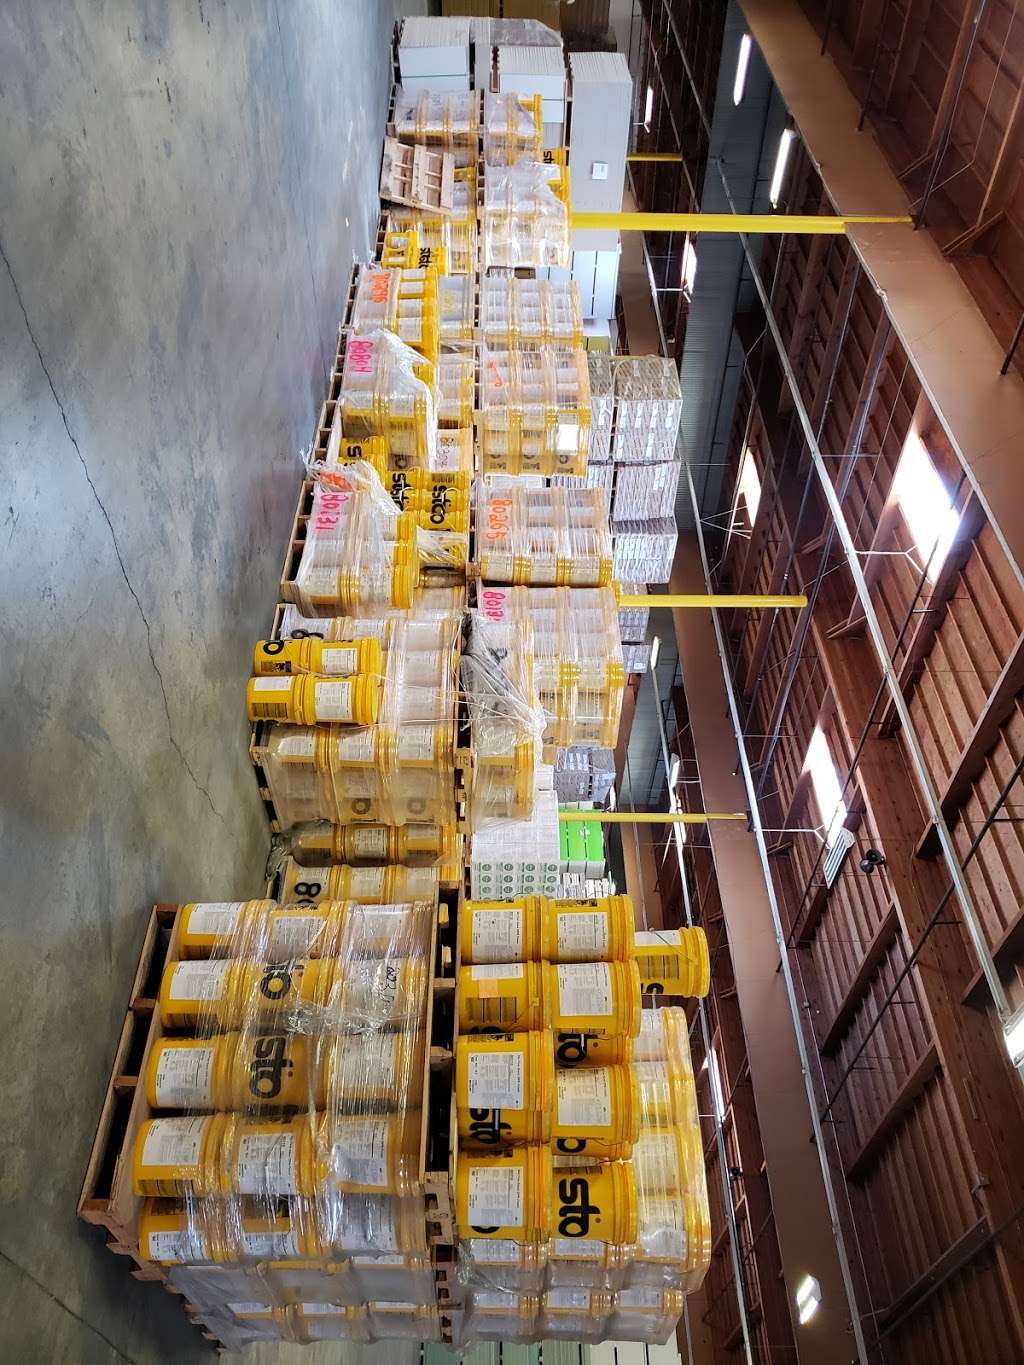 Foundation Building Materials - store  | Photo 8 of 10 | Address: A, 3343 Arden Rd, Hayward, CA 94545, USA | Phone: (510) 259-9404